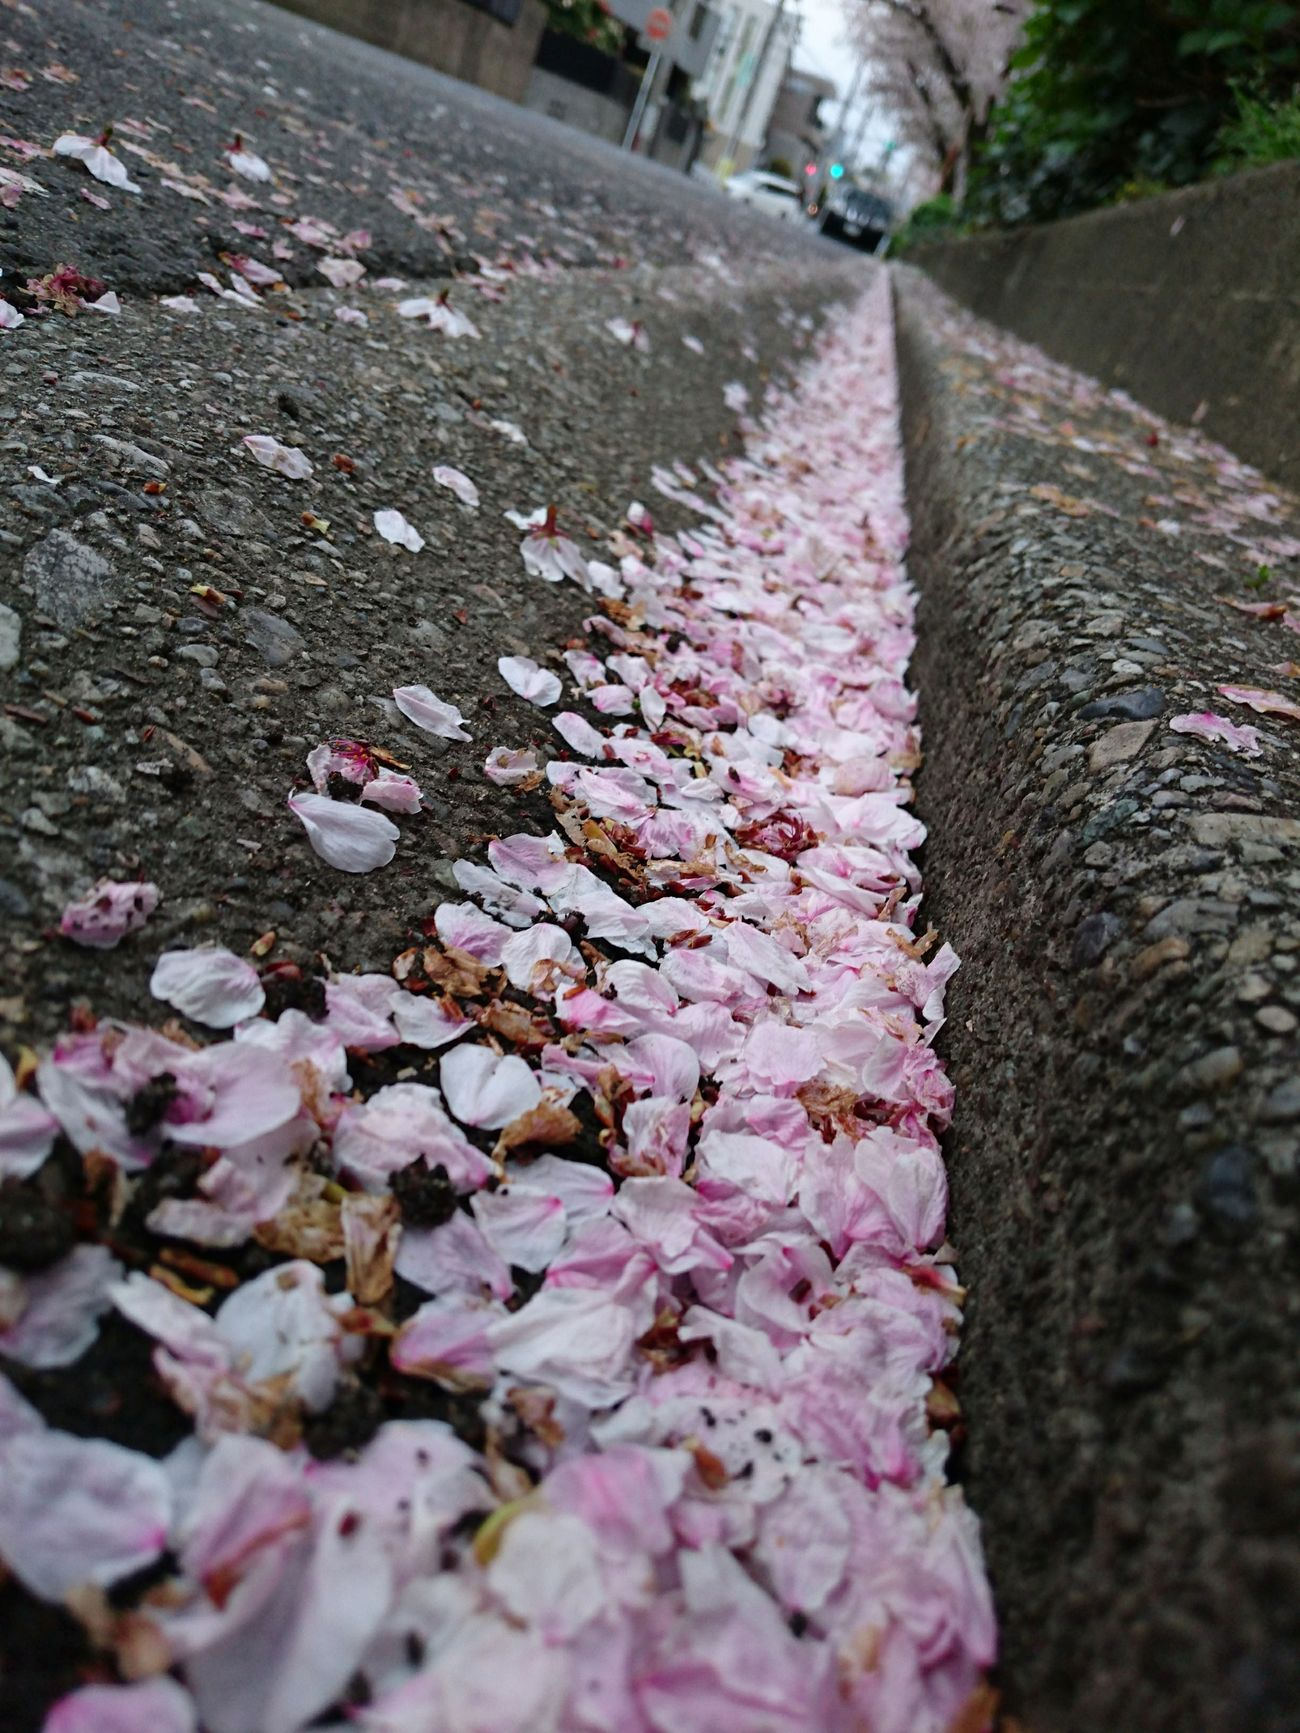 Outdoors Petals🌸 Cherry Blossoms Disperse Scattered Pink Flower 🌸 Pink Pink Color Slanted Edge Gather No People Close-up Street Road Springtime Nature Beauty In Nature Japan Photography My Smartphone Life Mobile Photography Nature_collection Eyem Nature Lovers  Fragility